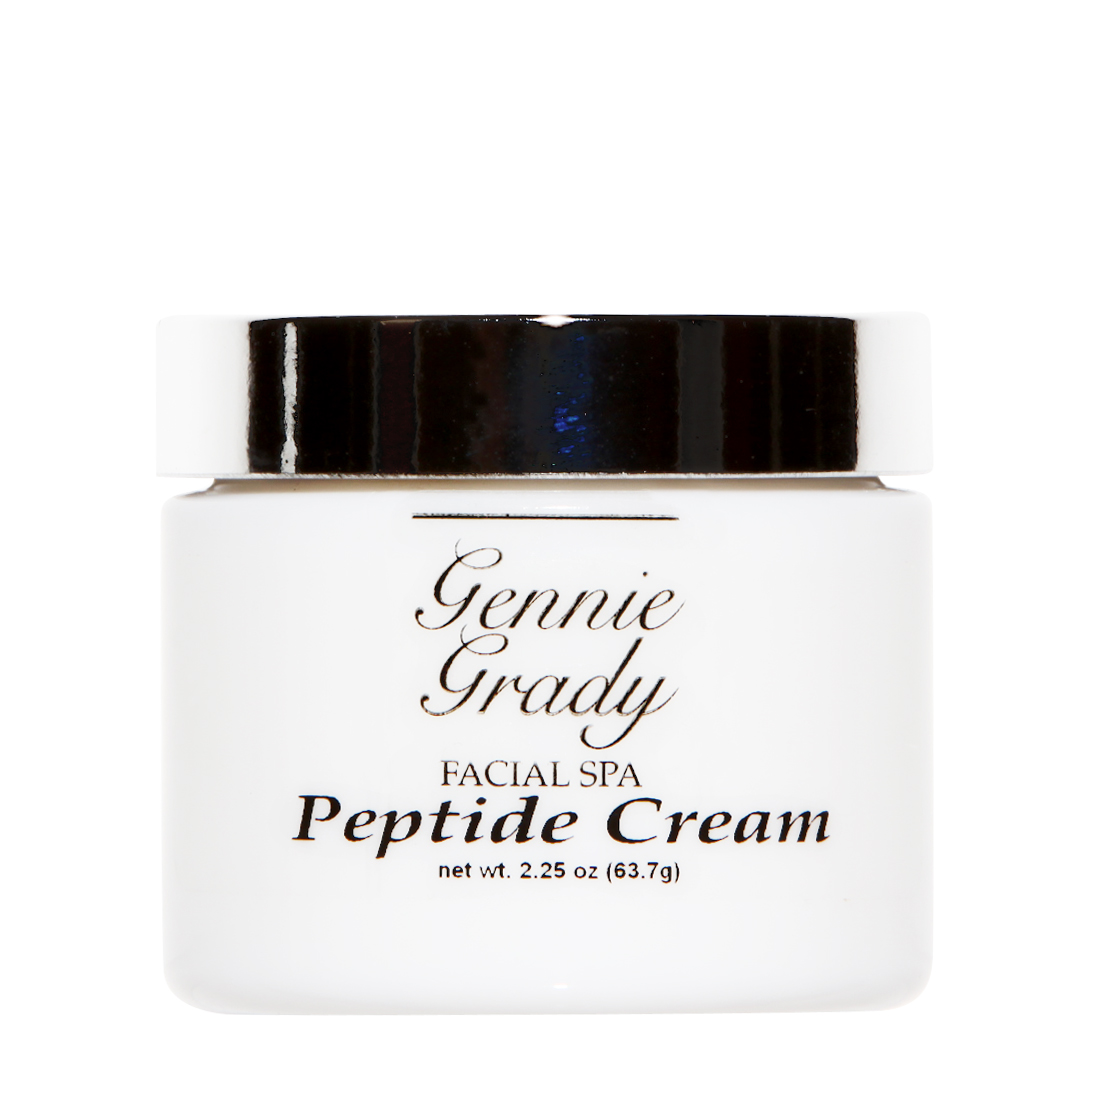 peptidecream-1294759524